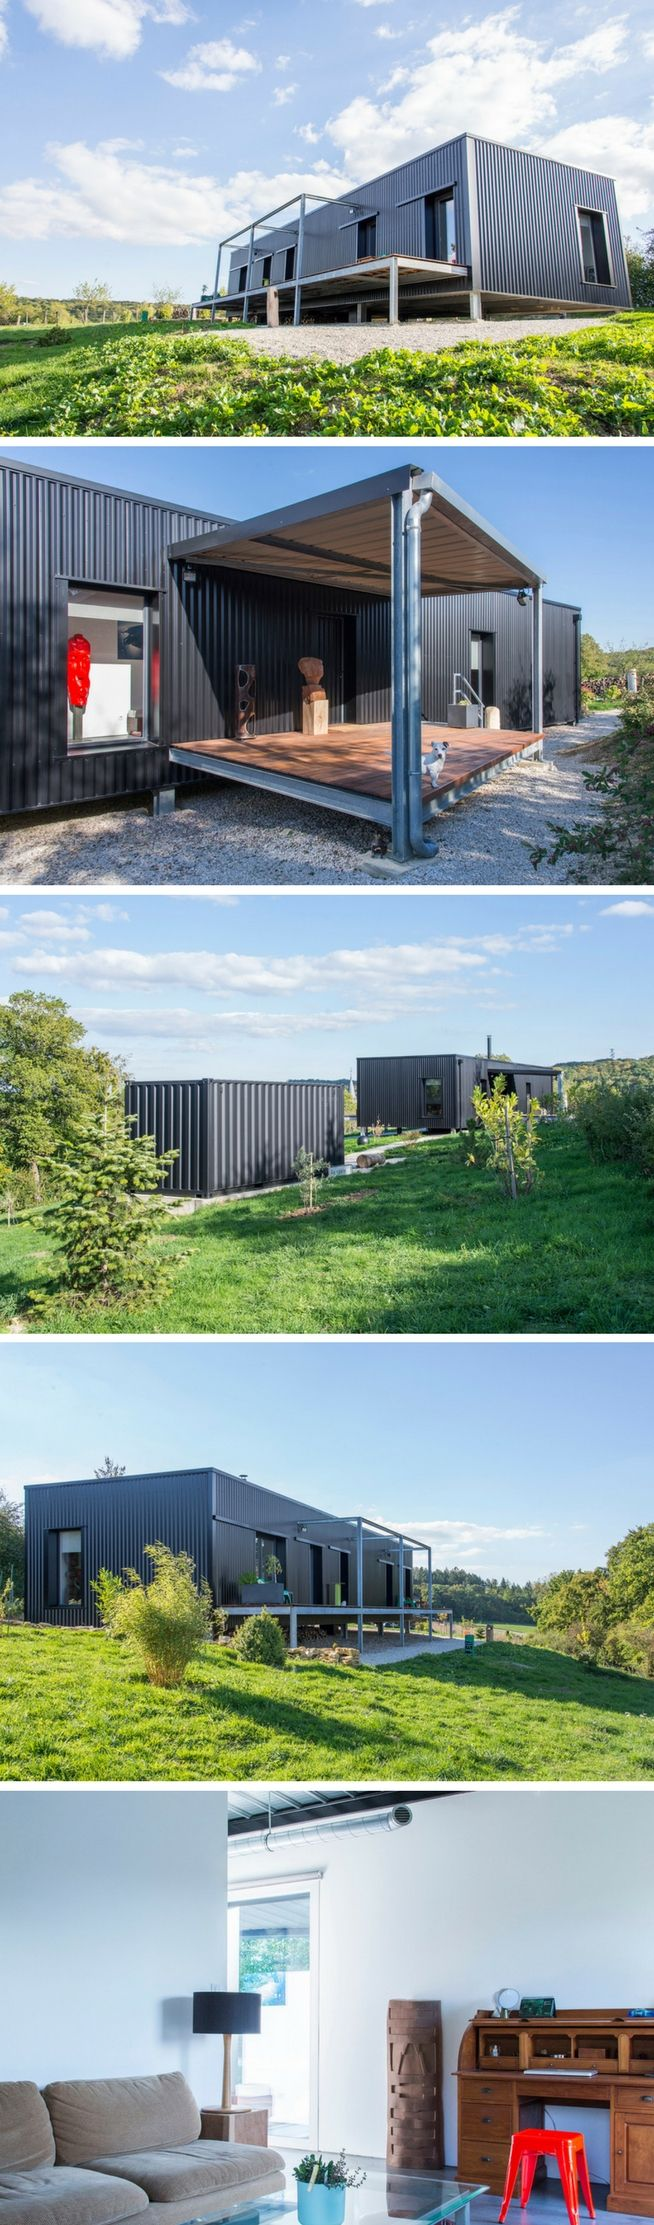 2906 best shipping container homes images on pinterest | shipping